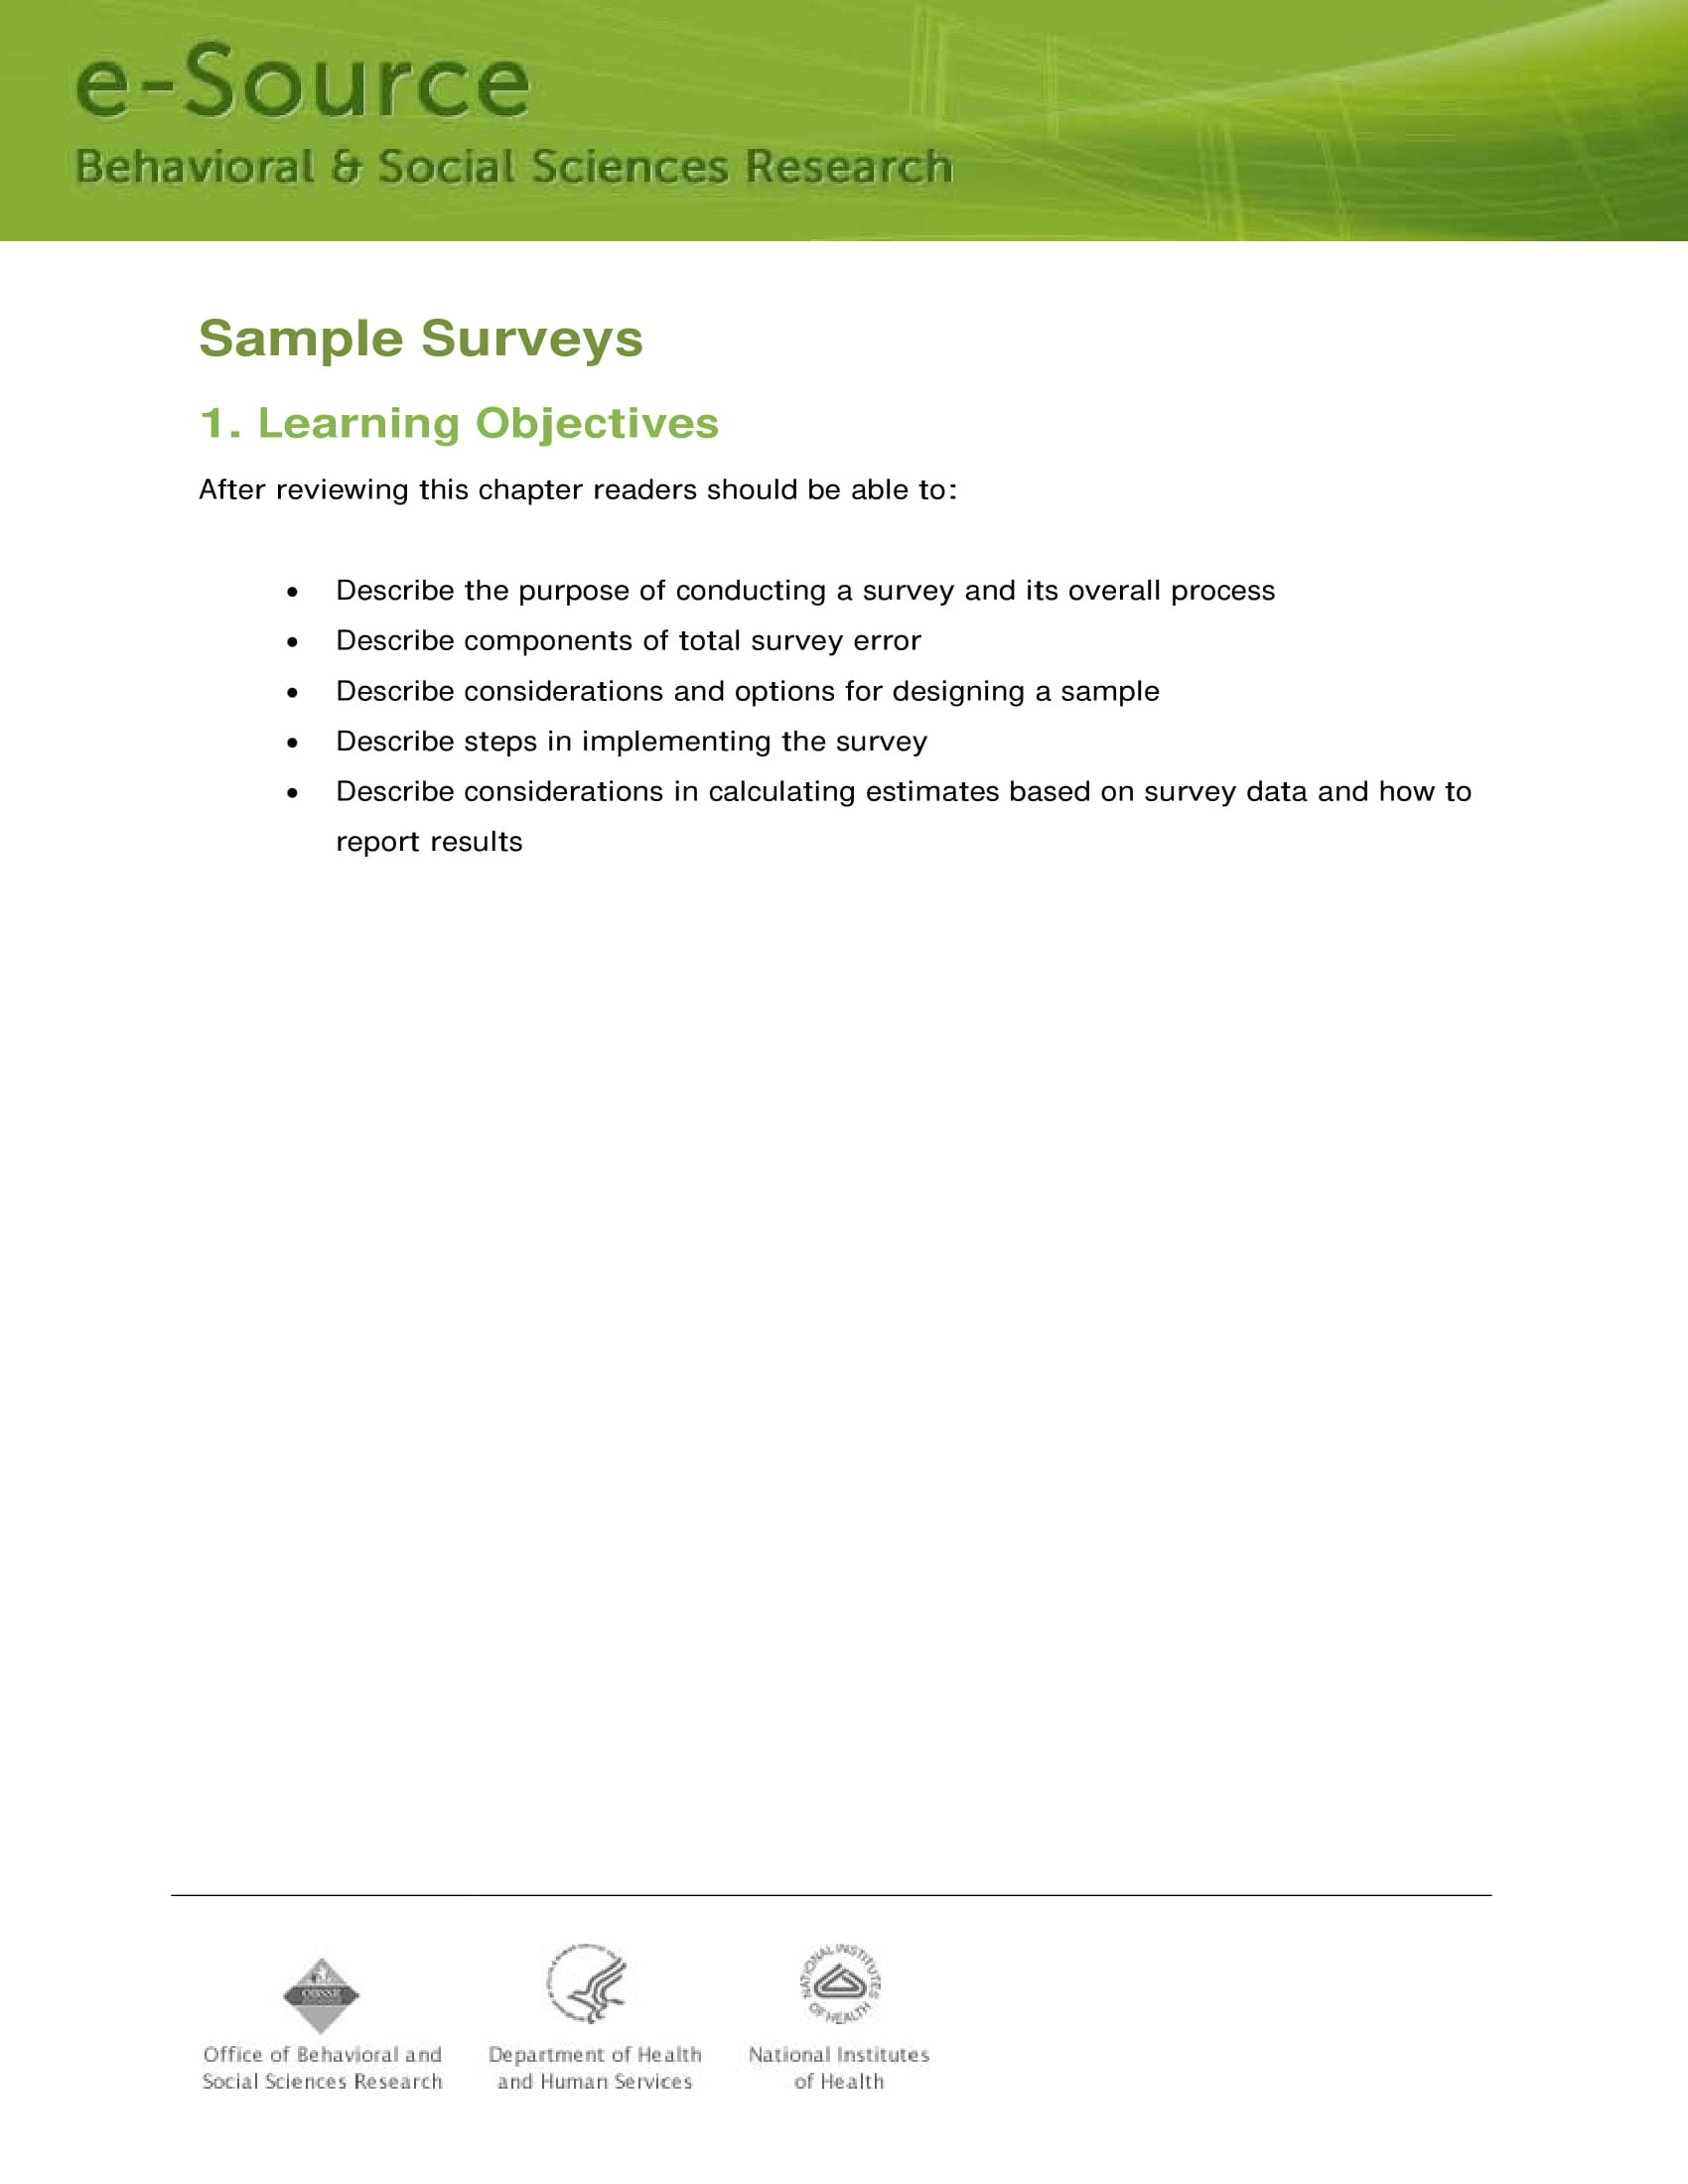 sample surveys 01